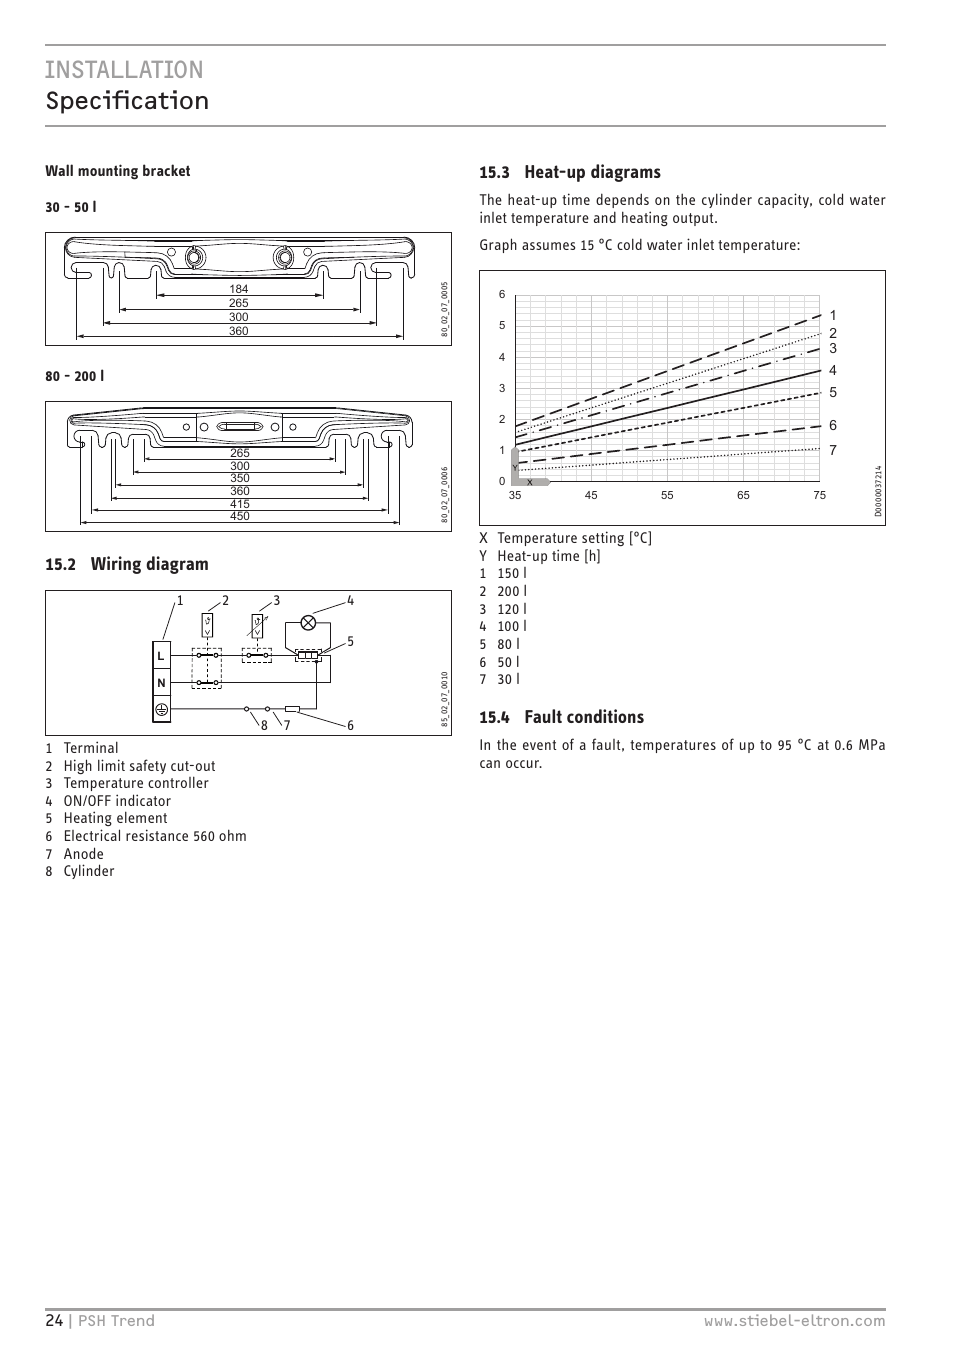 Installation Specification 2 Wiring Diagram 3 Heatup Diagrams. Installation Specification 2 Wiring Diagram 3 Heatup Diagrams Stiebel Eltron Psh 30 Trend User Manual Page 24 92. Wiring. High Temperature Wiring Diagram For Cut Out At Scoala.co